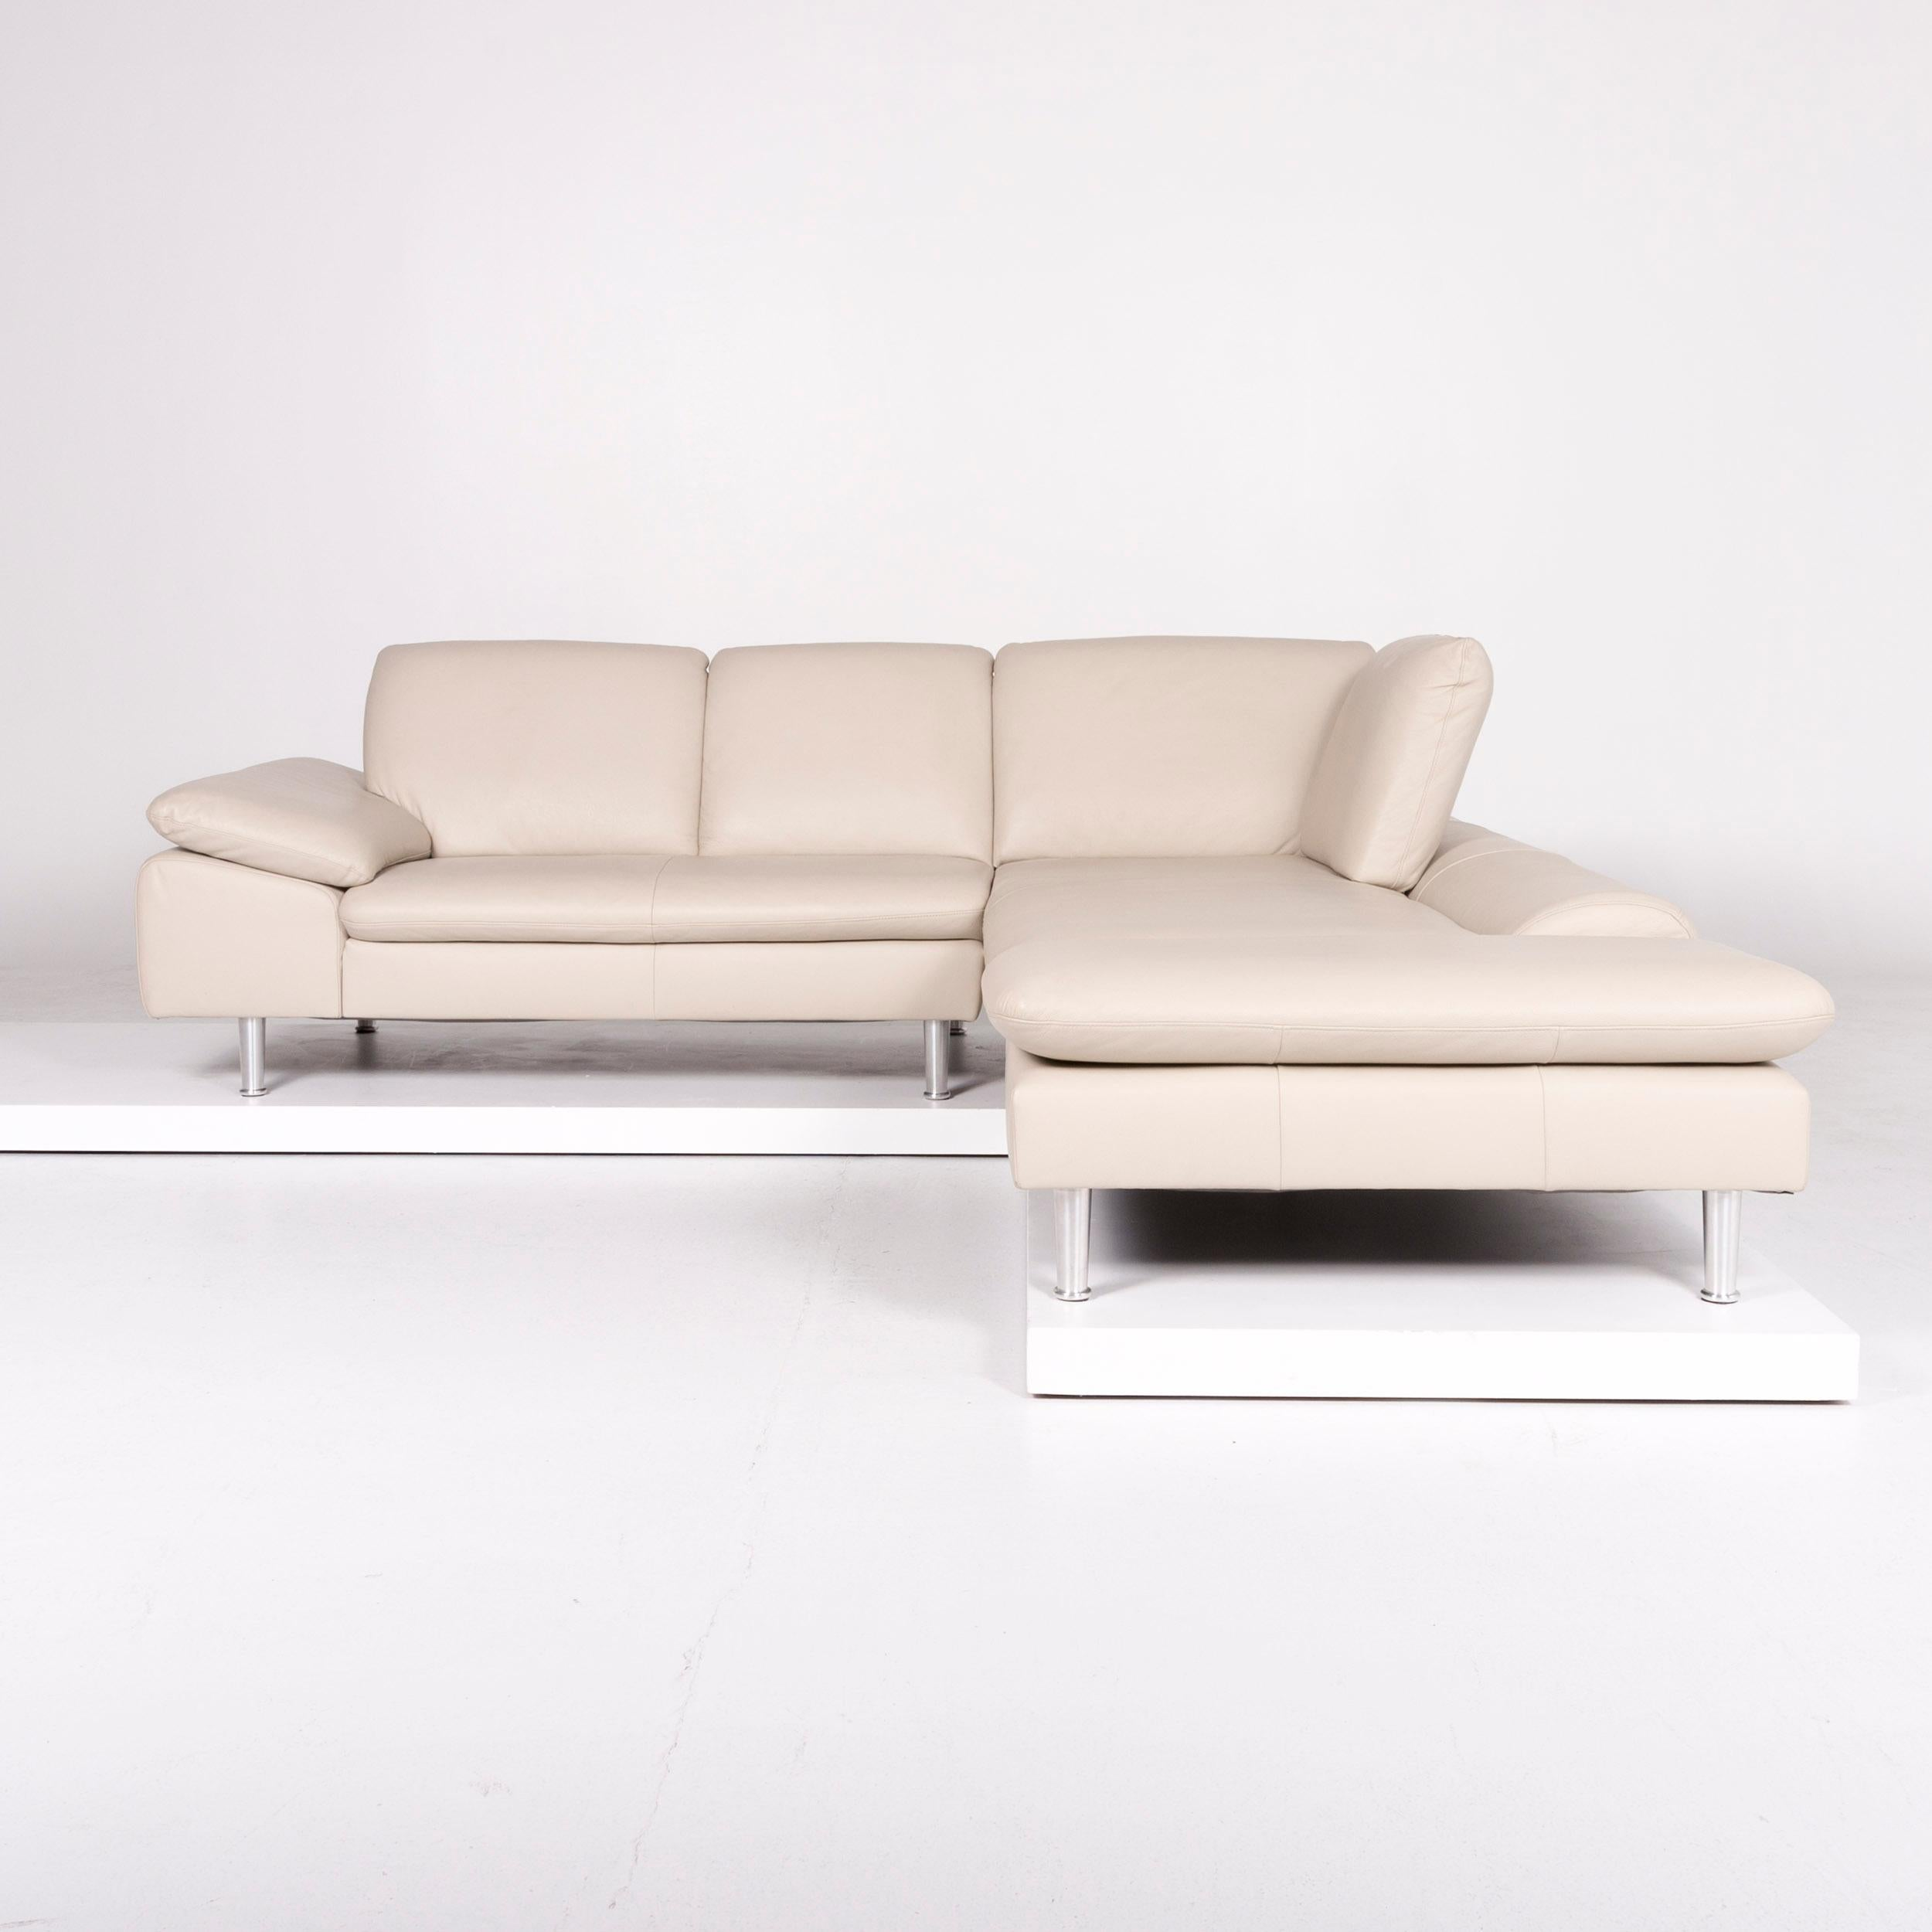 Willi Schillig Loop Designer Leder Sofa Beige Ecksofa For